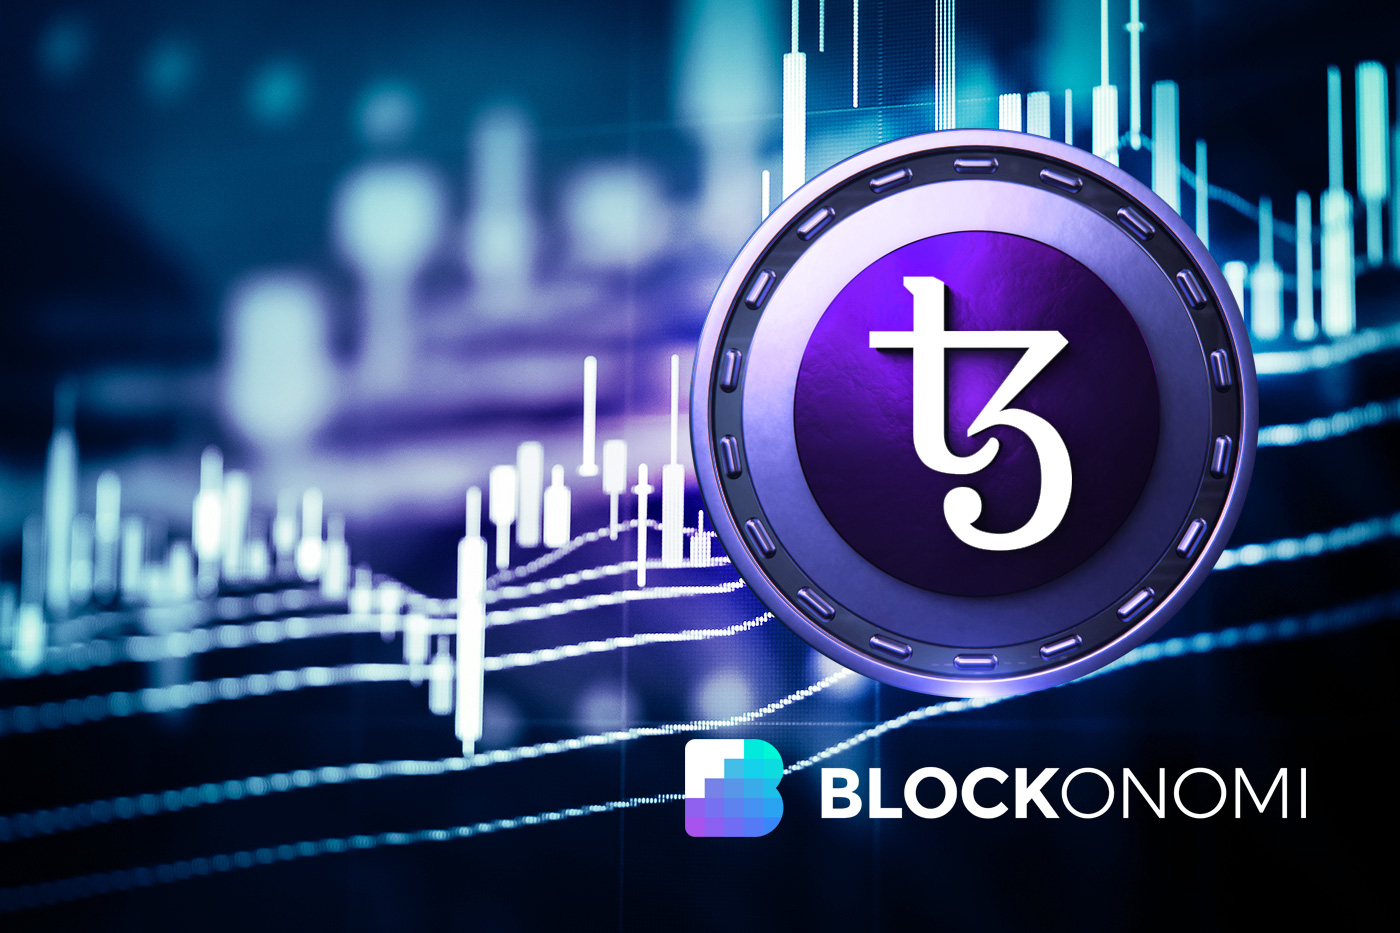 New Tezos ETP Hits Top Swiss Stock Exchange with Staking Rewards Tied In